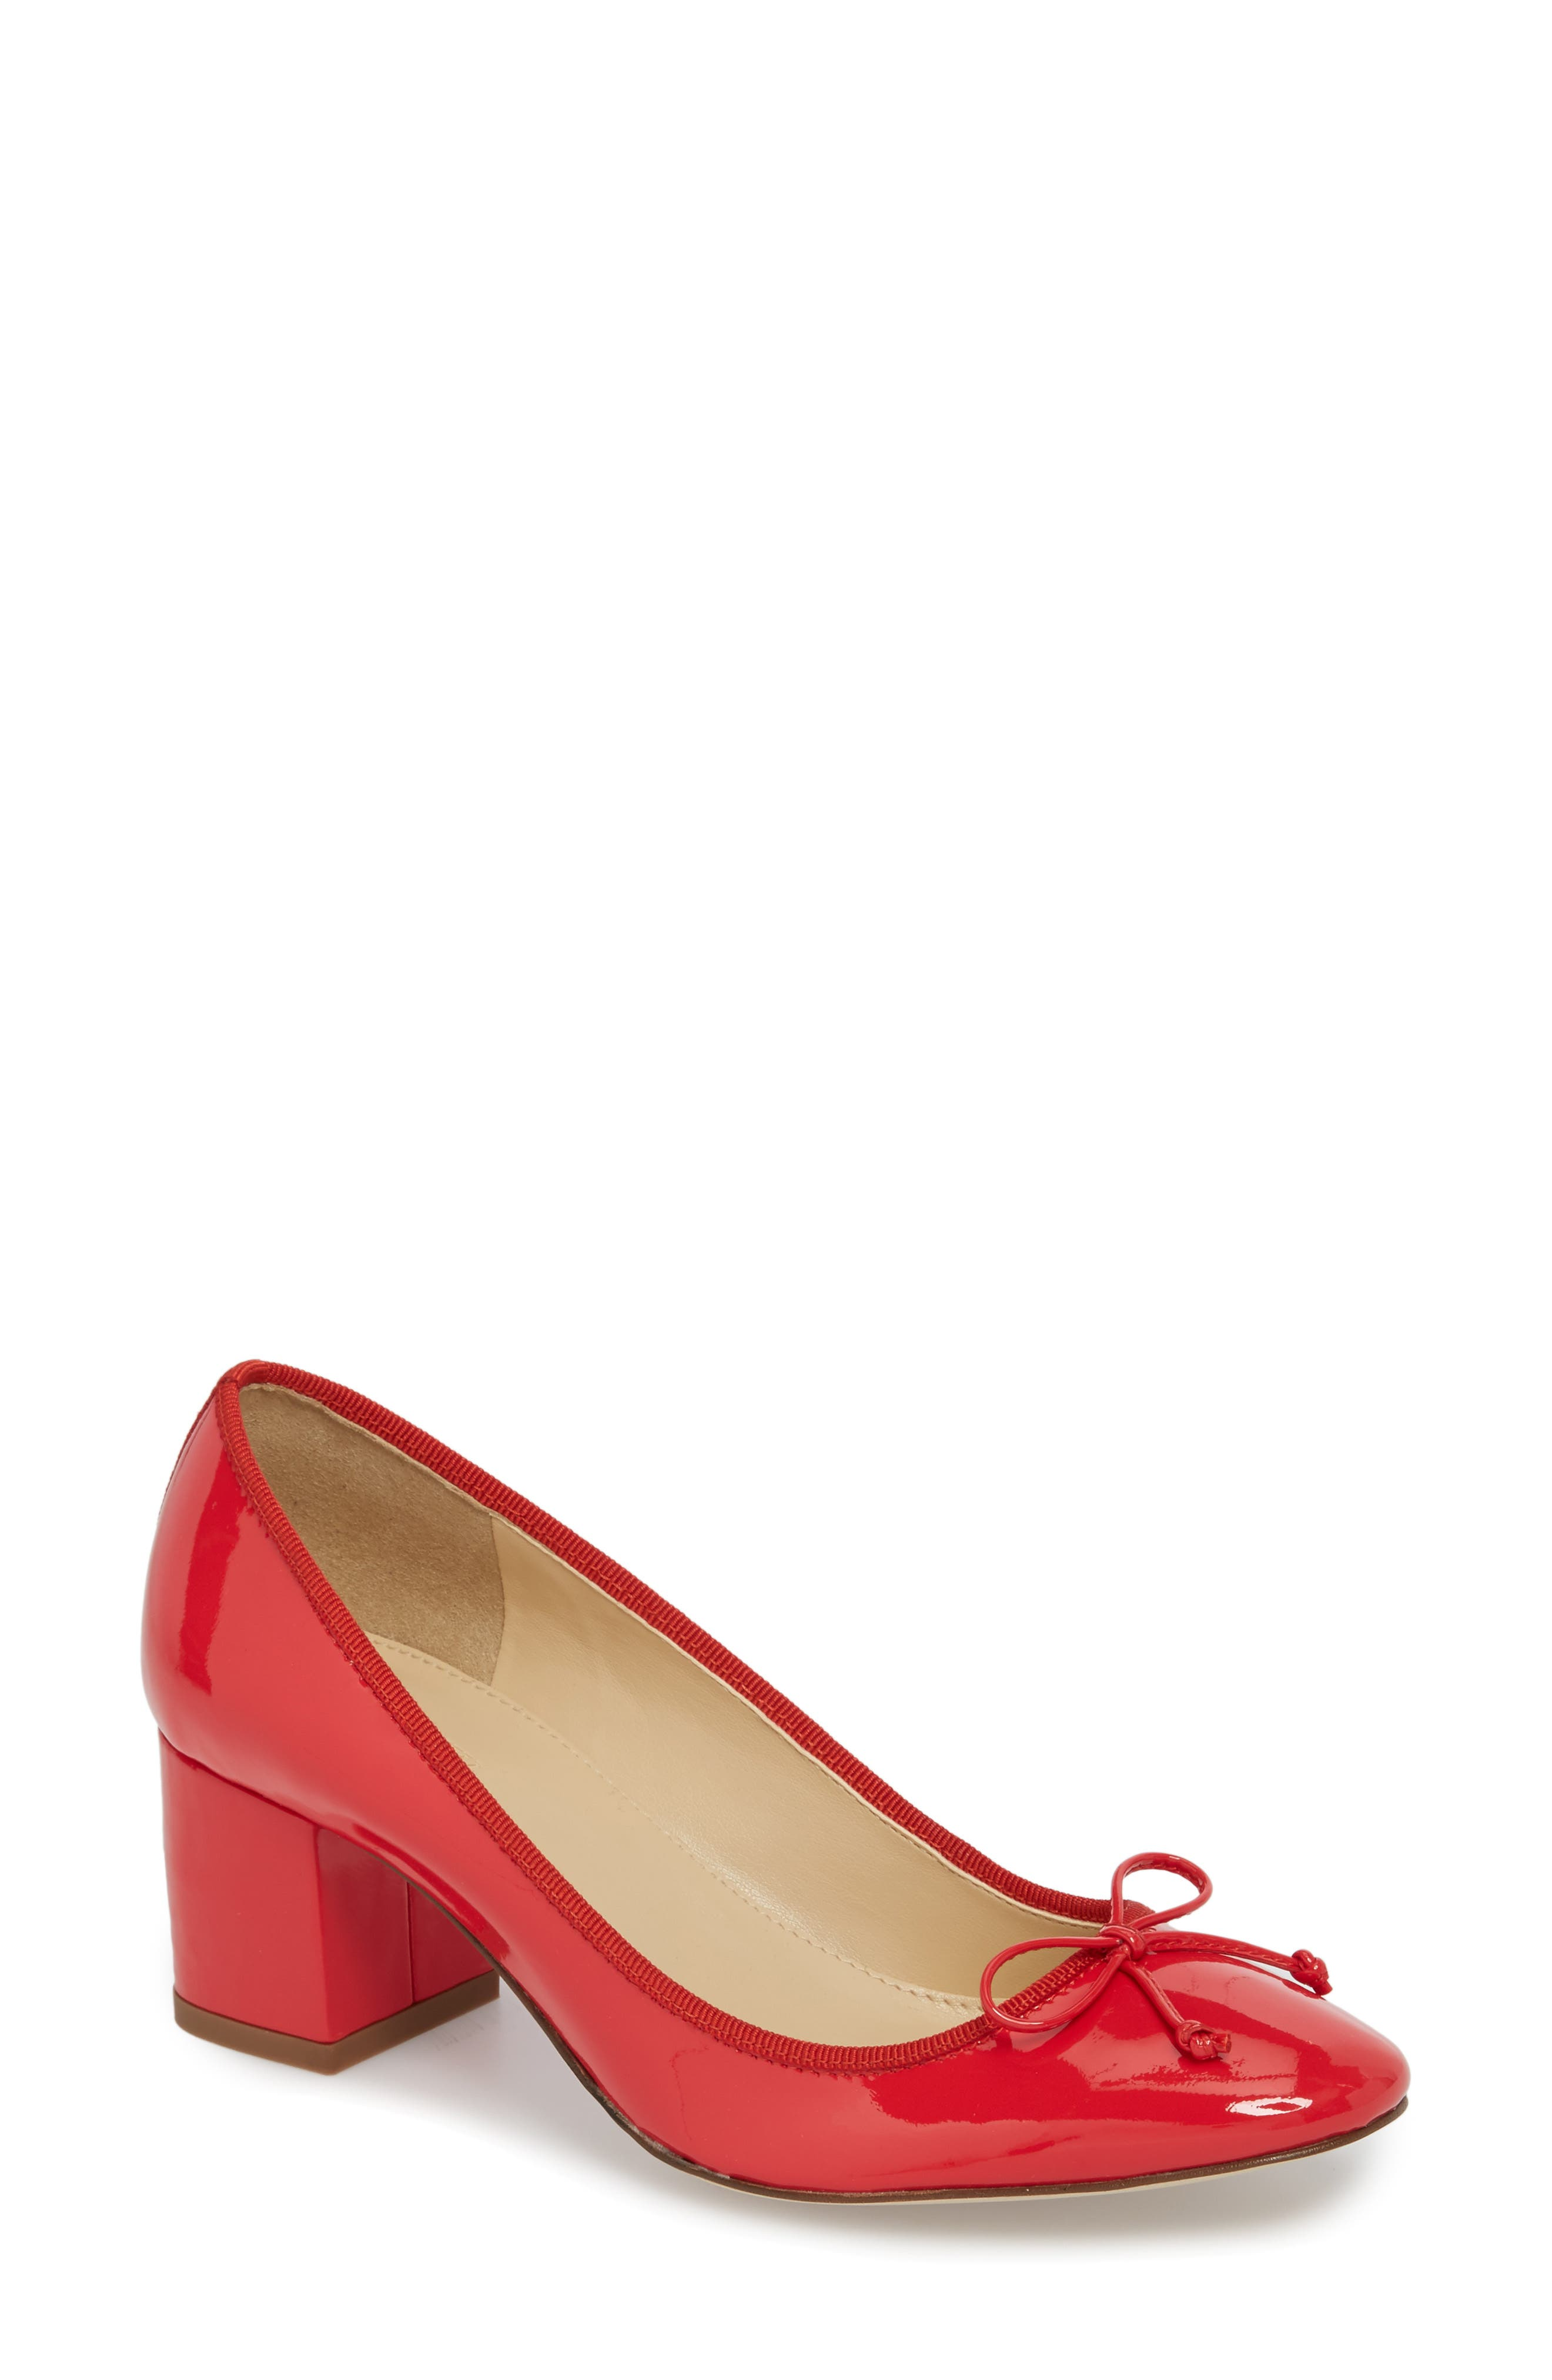 Leonard Pump,                         Main,                         color, Red Leather